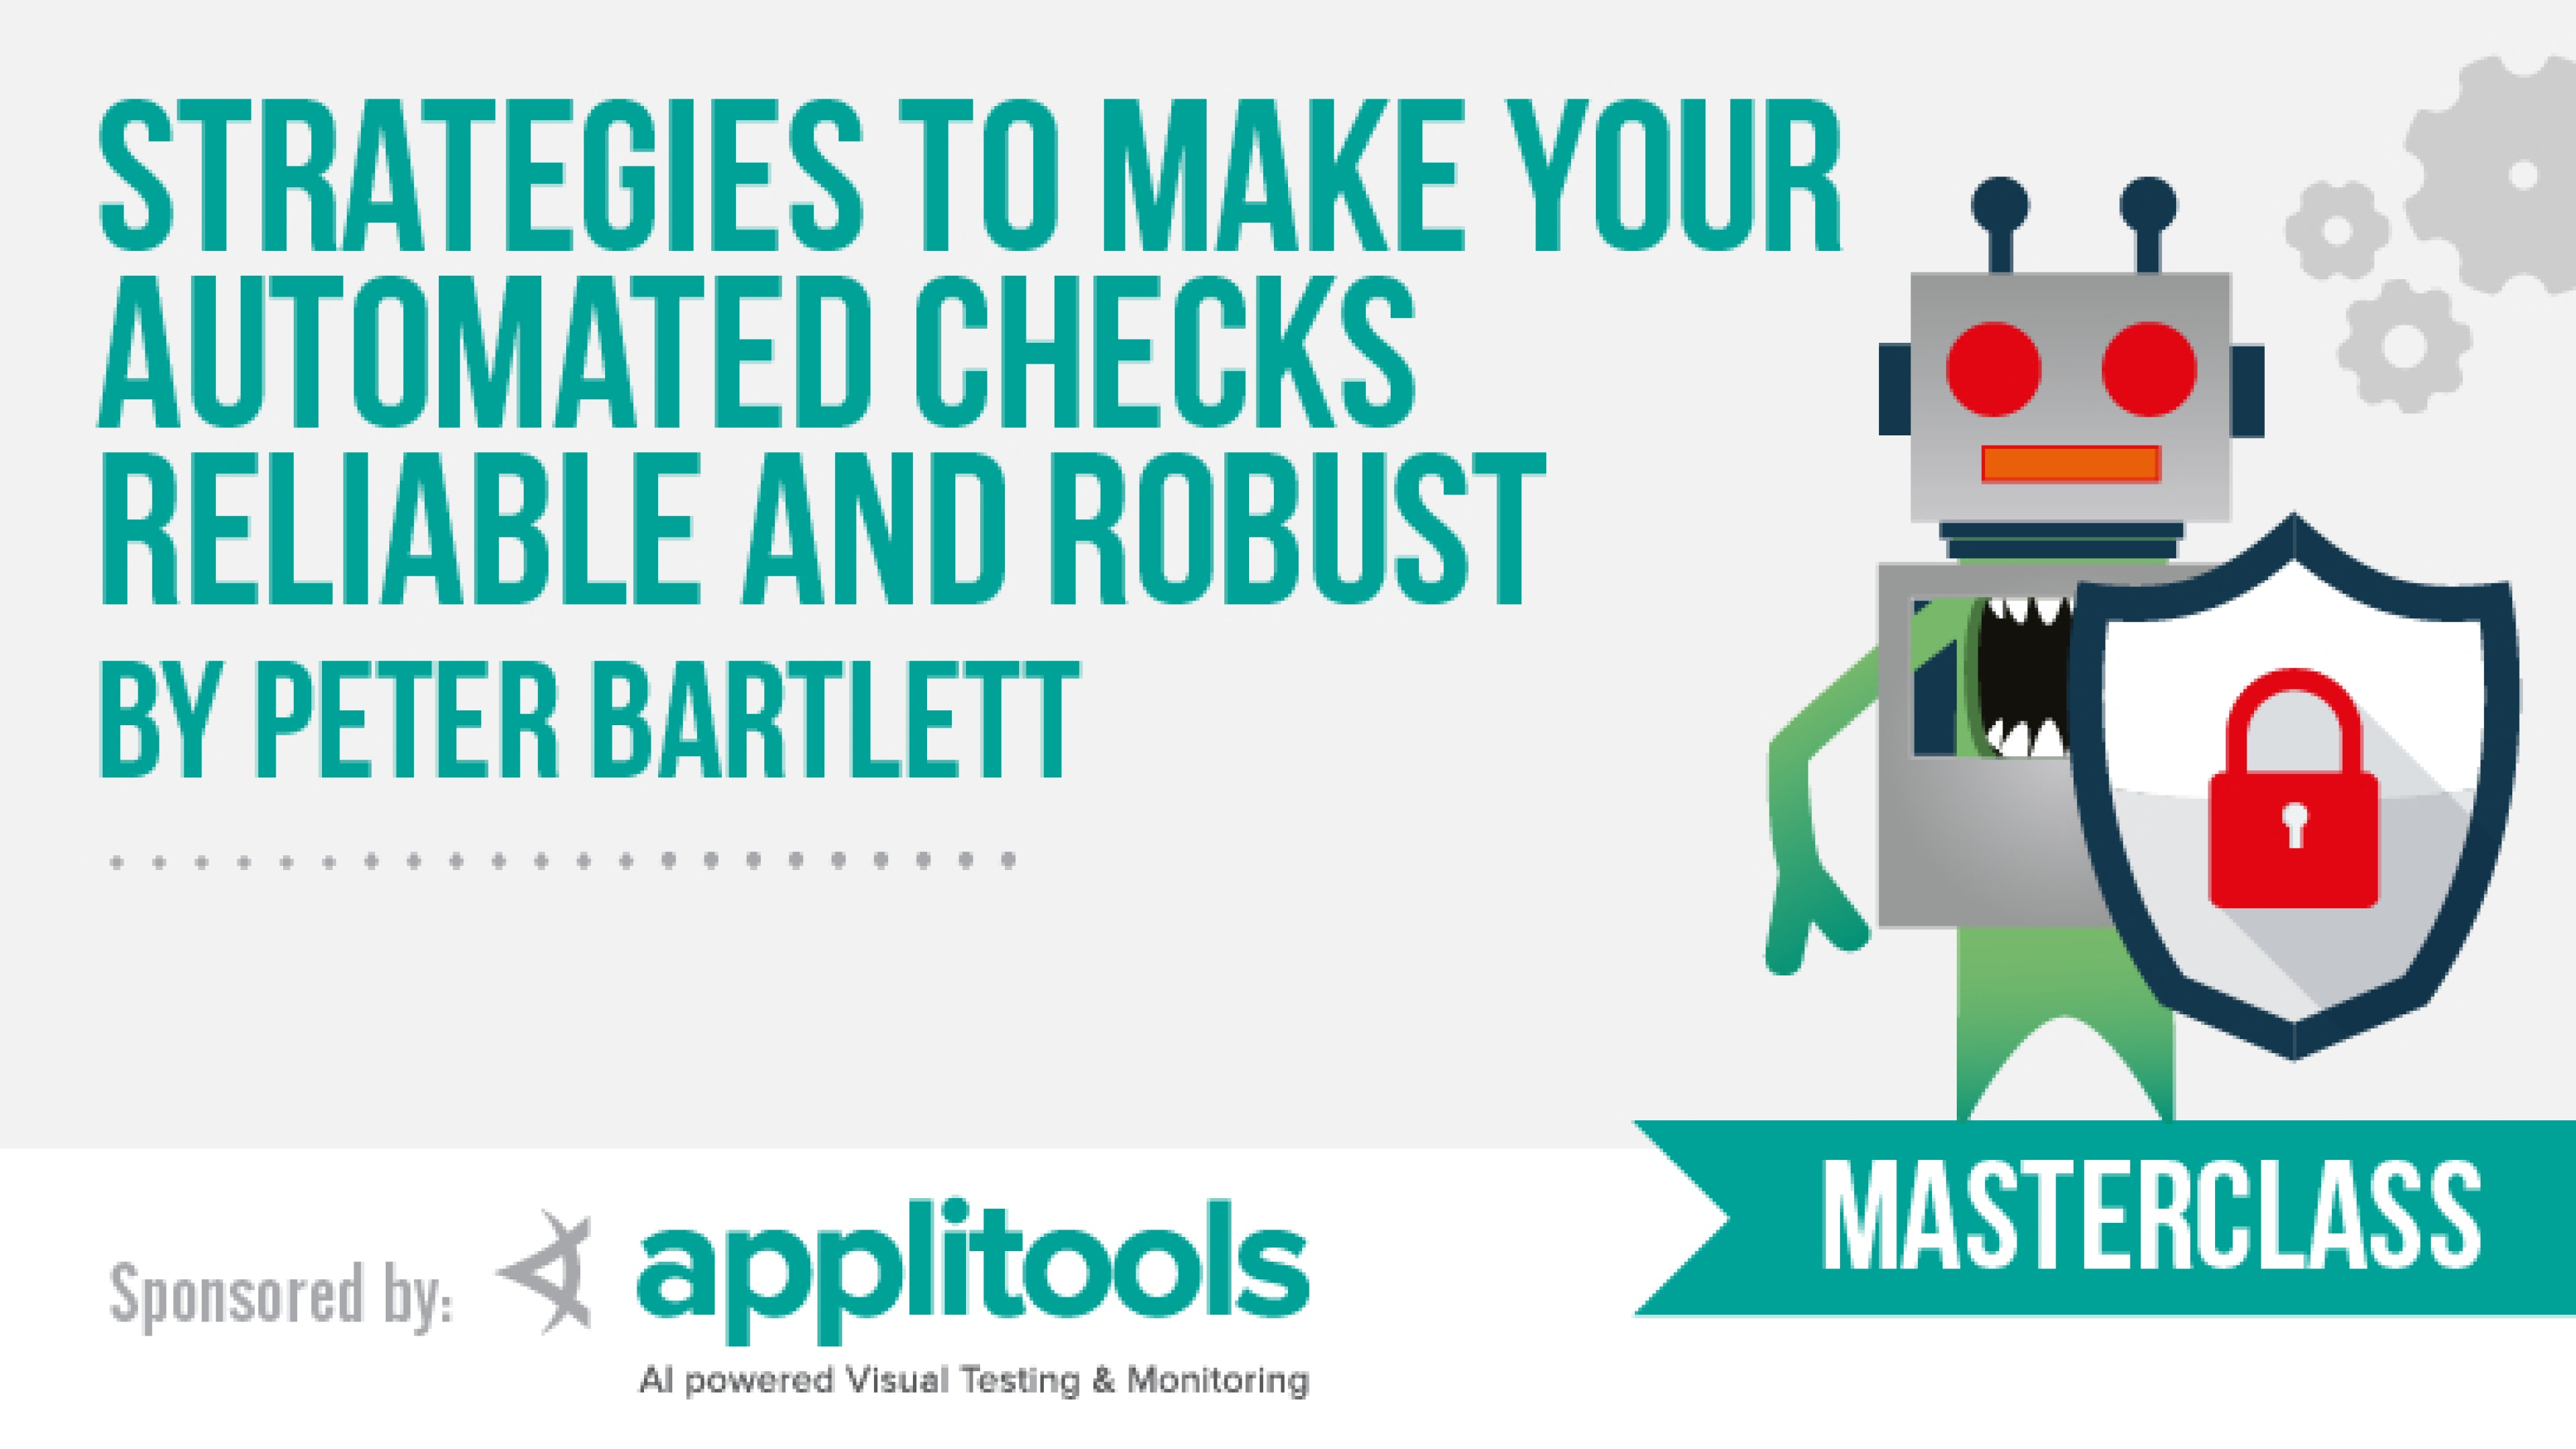 Strategies to make your automated checks reliable and robust with Peter Bartlett